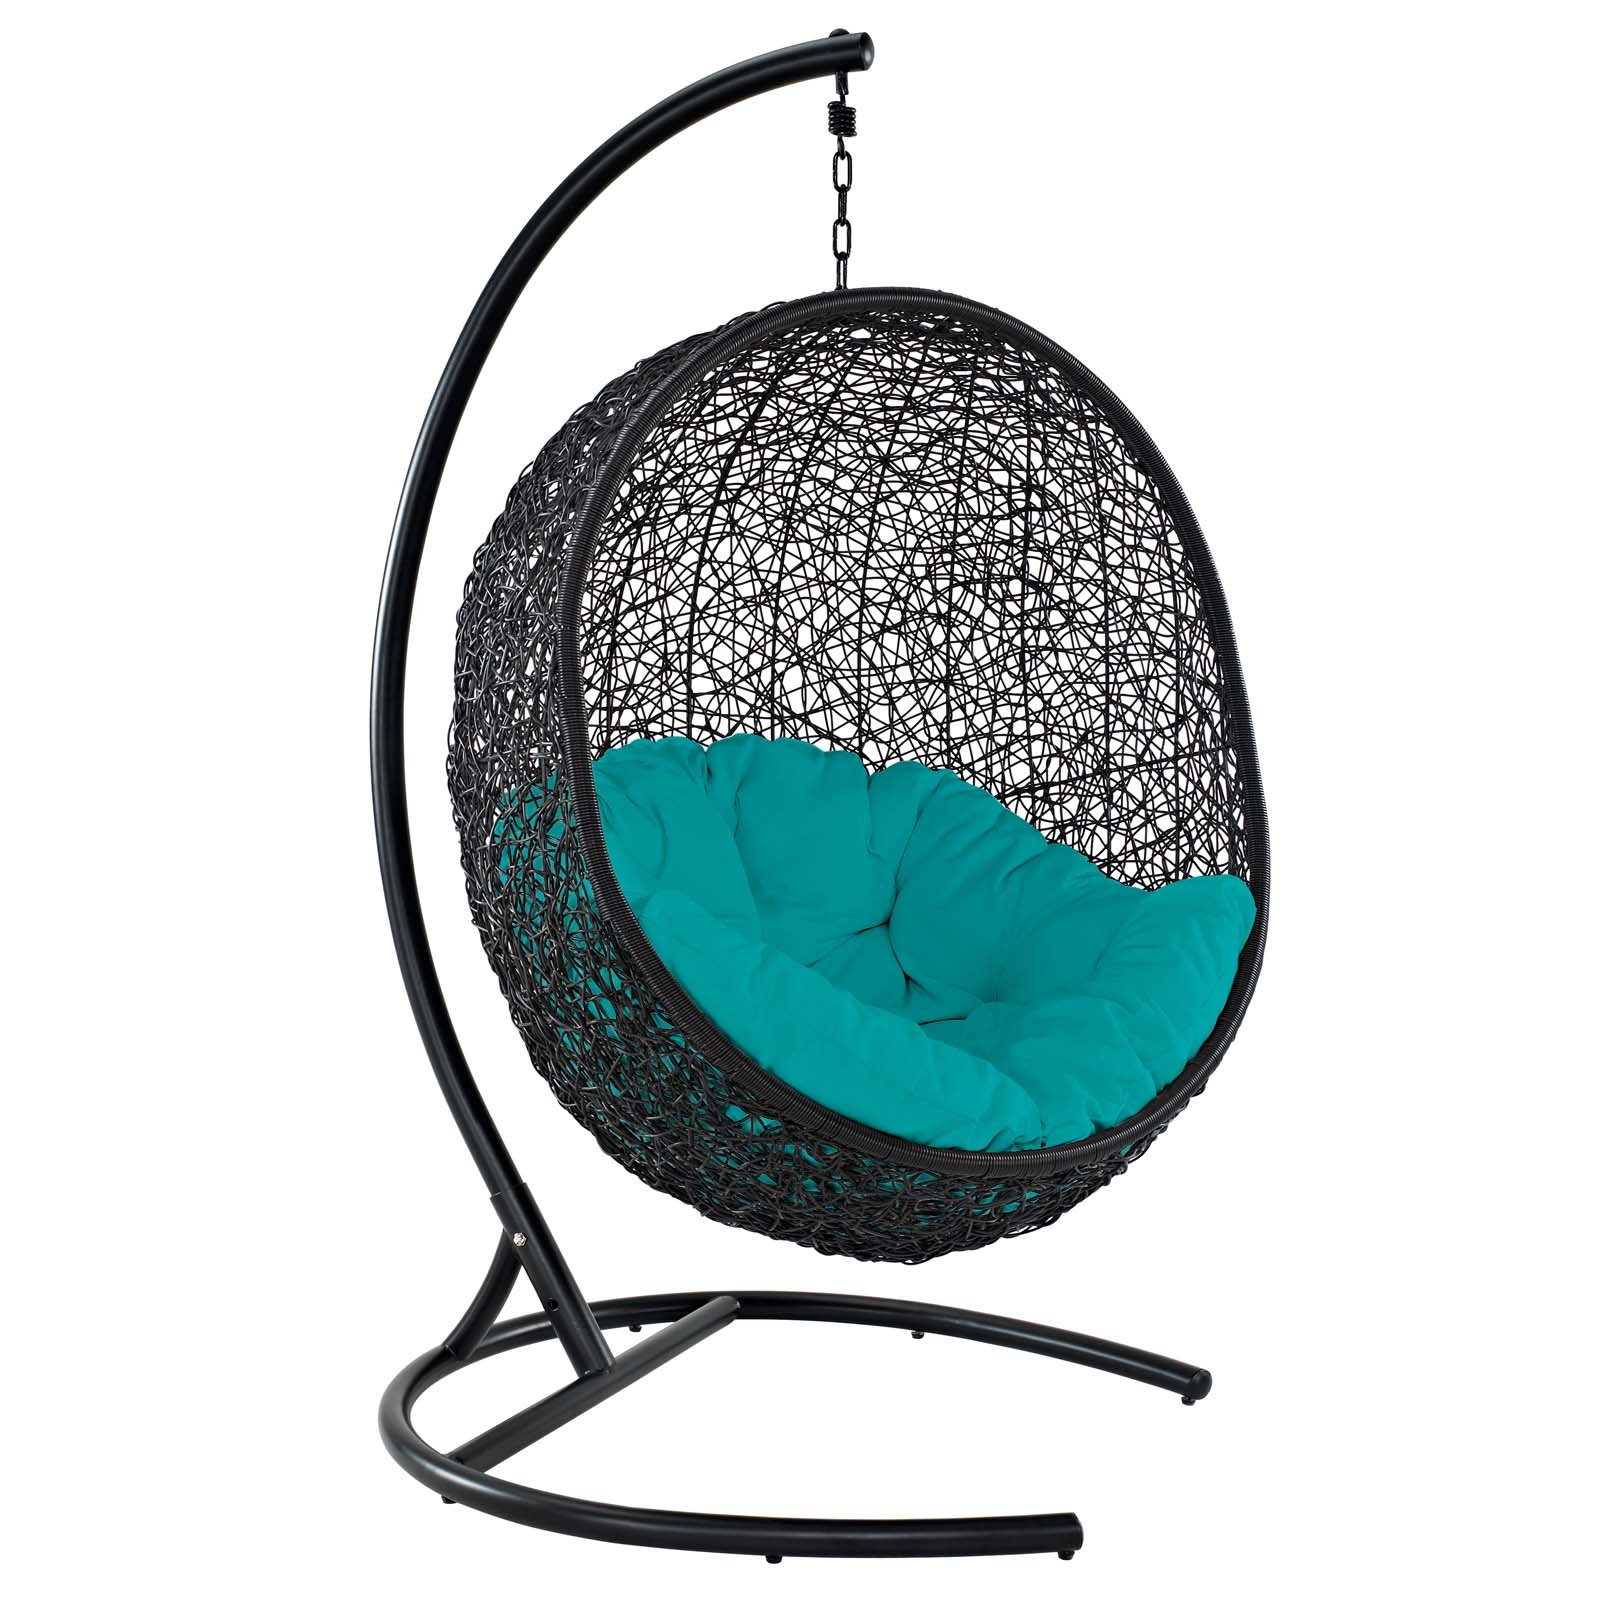 Modway EEI-739-TRQ-SET Encase Swing Outdoor Patio Lounge Chair, With Stand, Turquoise